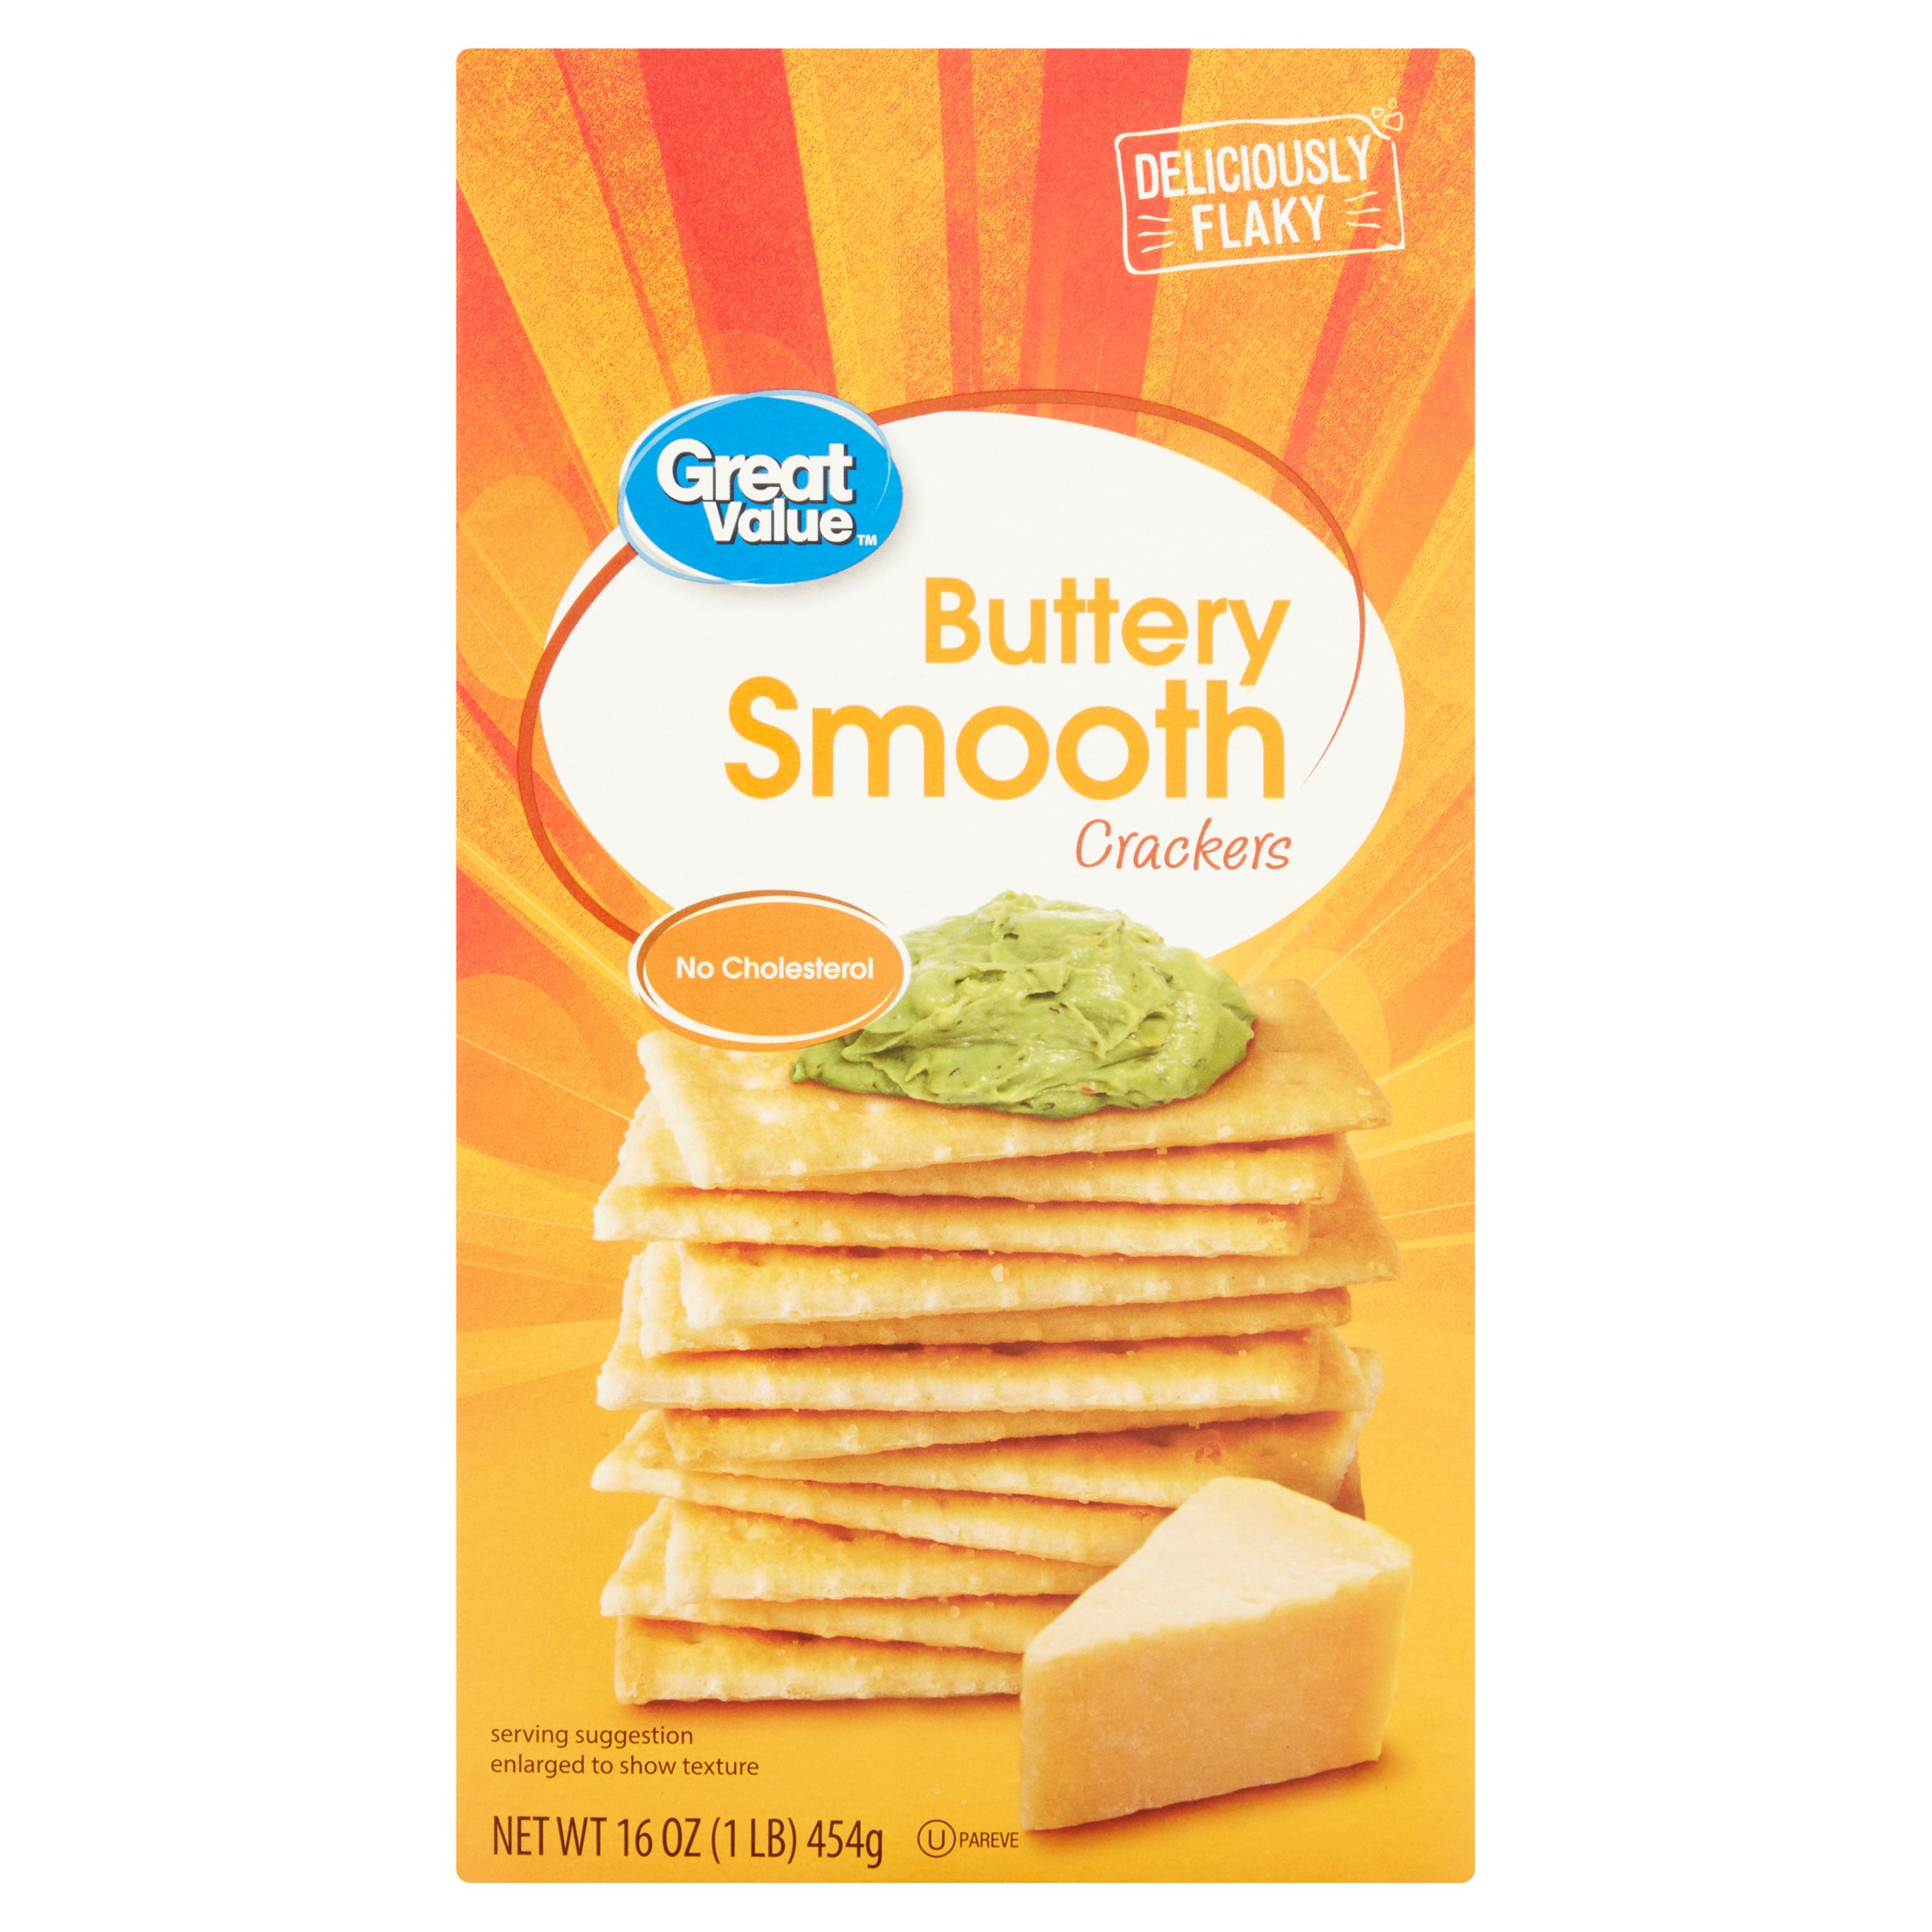 Great Value Buttery Smooth Crackers, 16 oz